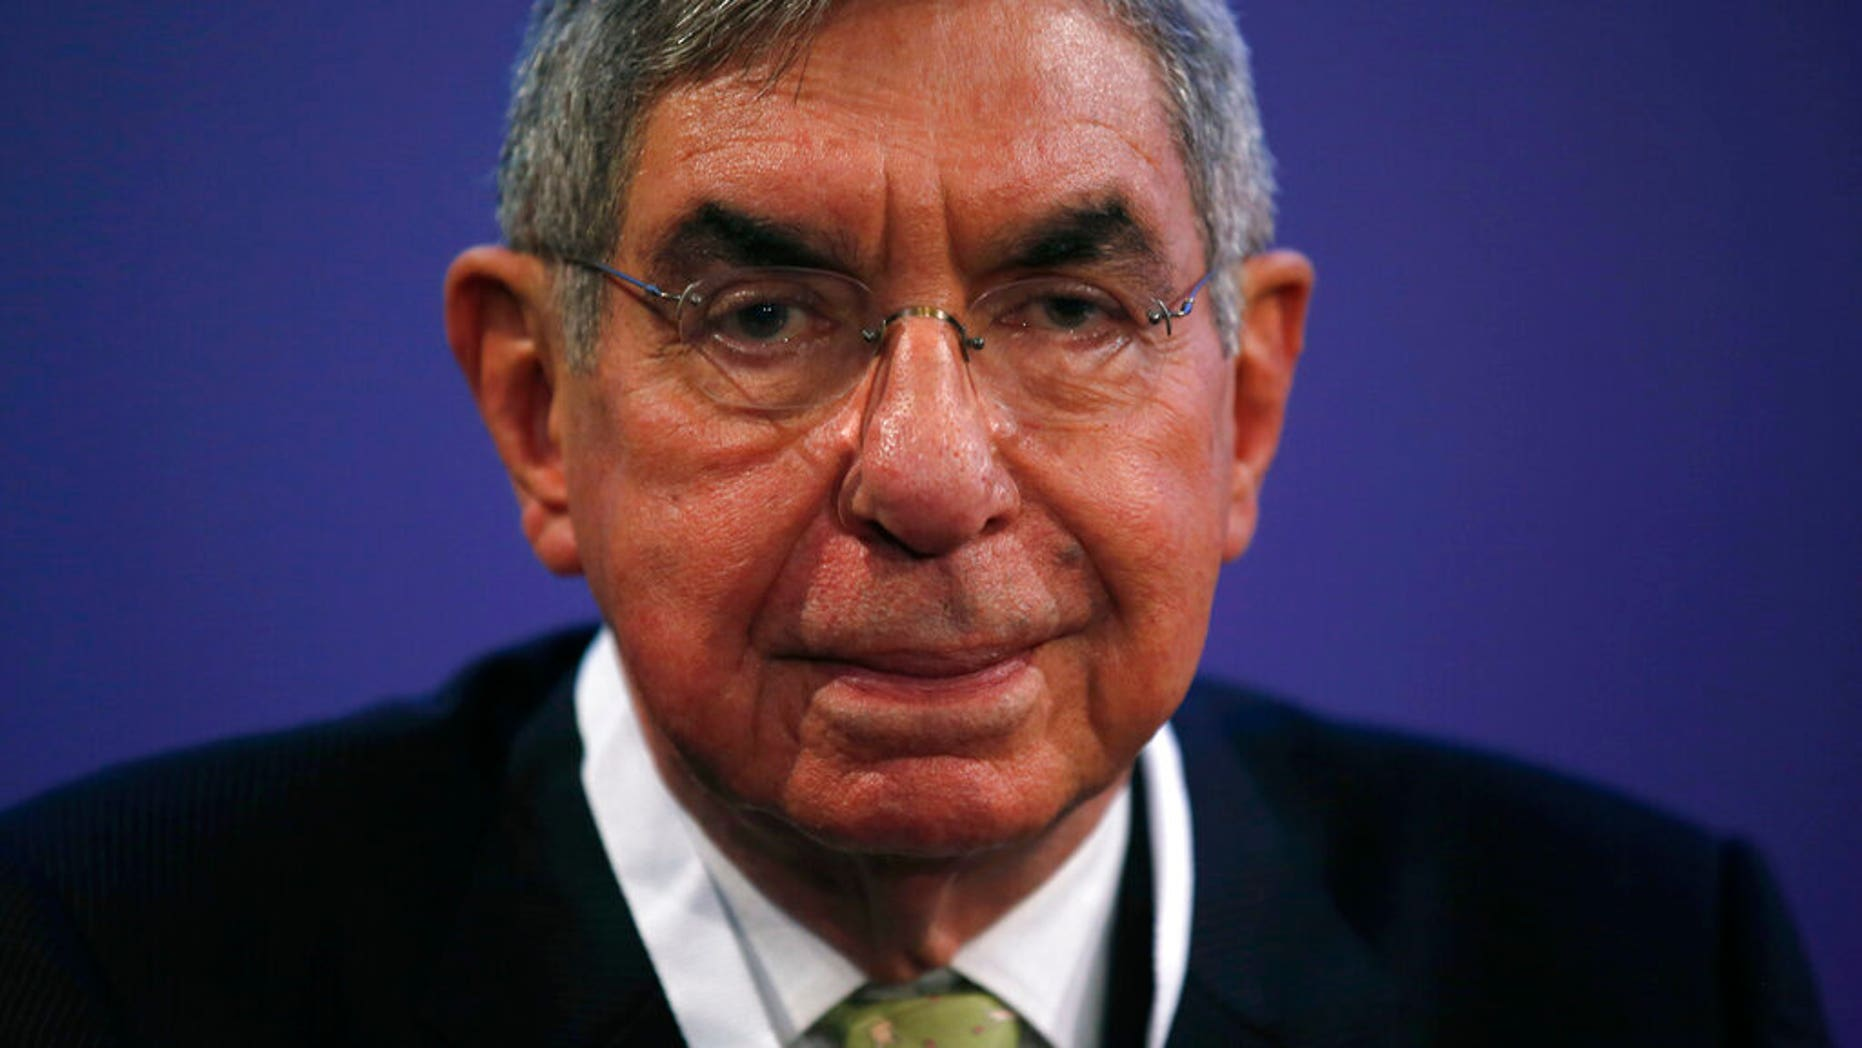 Óscar Arias Sánchez, pictured in 2015, has been accused of sexual assault, a charge he denies